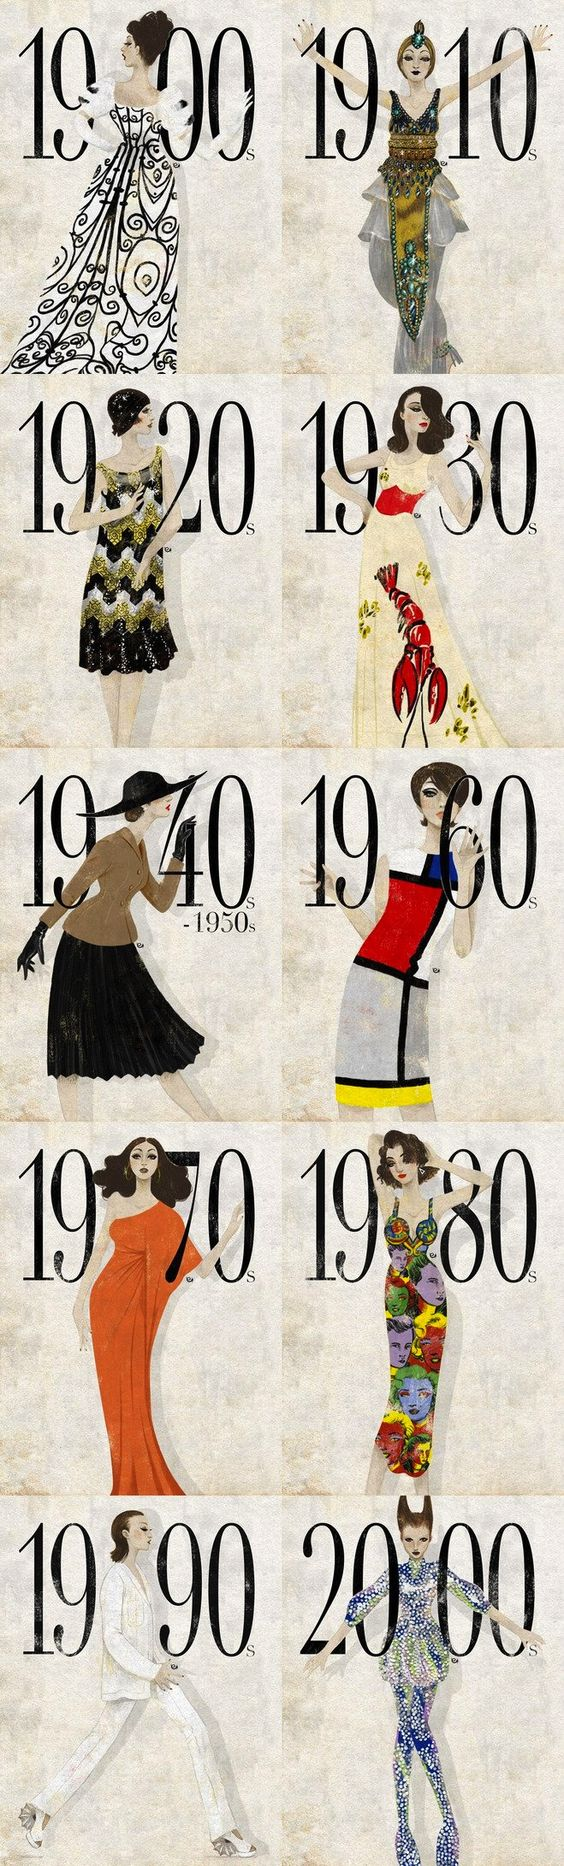 fashion history- though I think that the 40/50 was incorrectly matched: